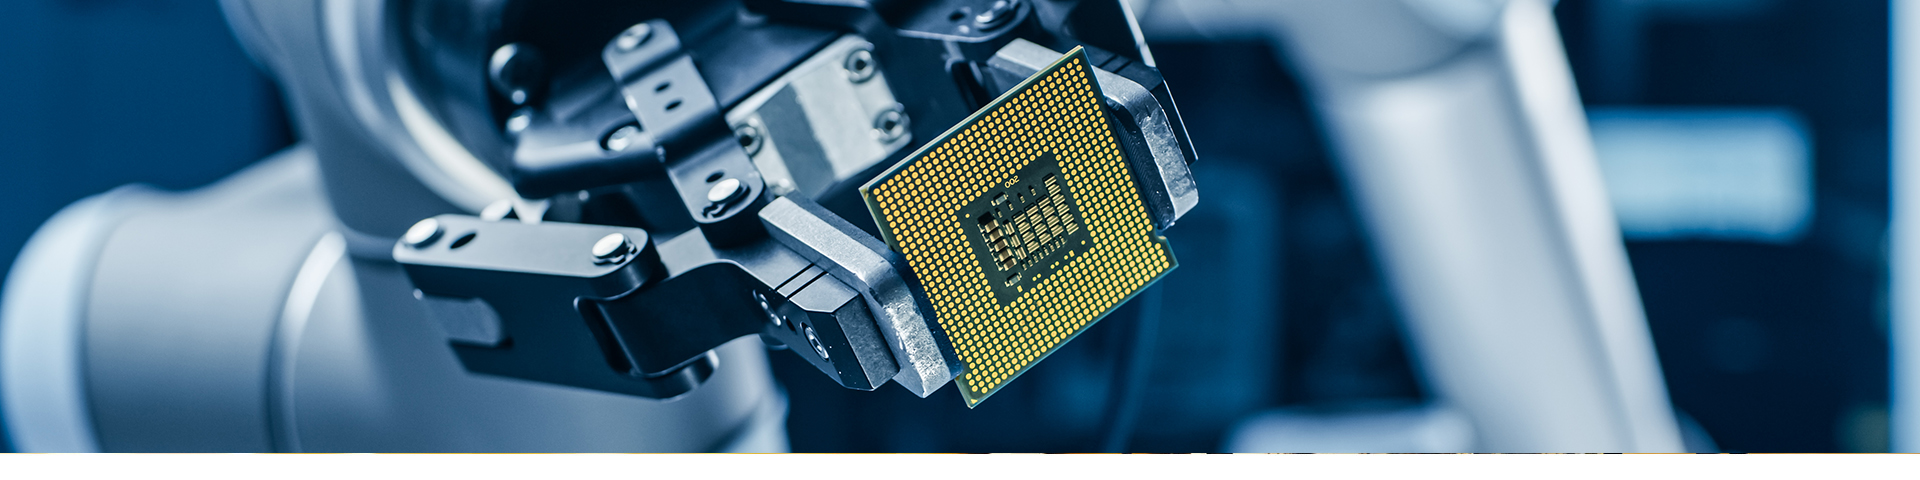 Electronics manufacturing services in promwad